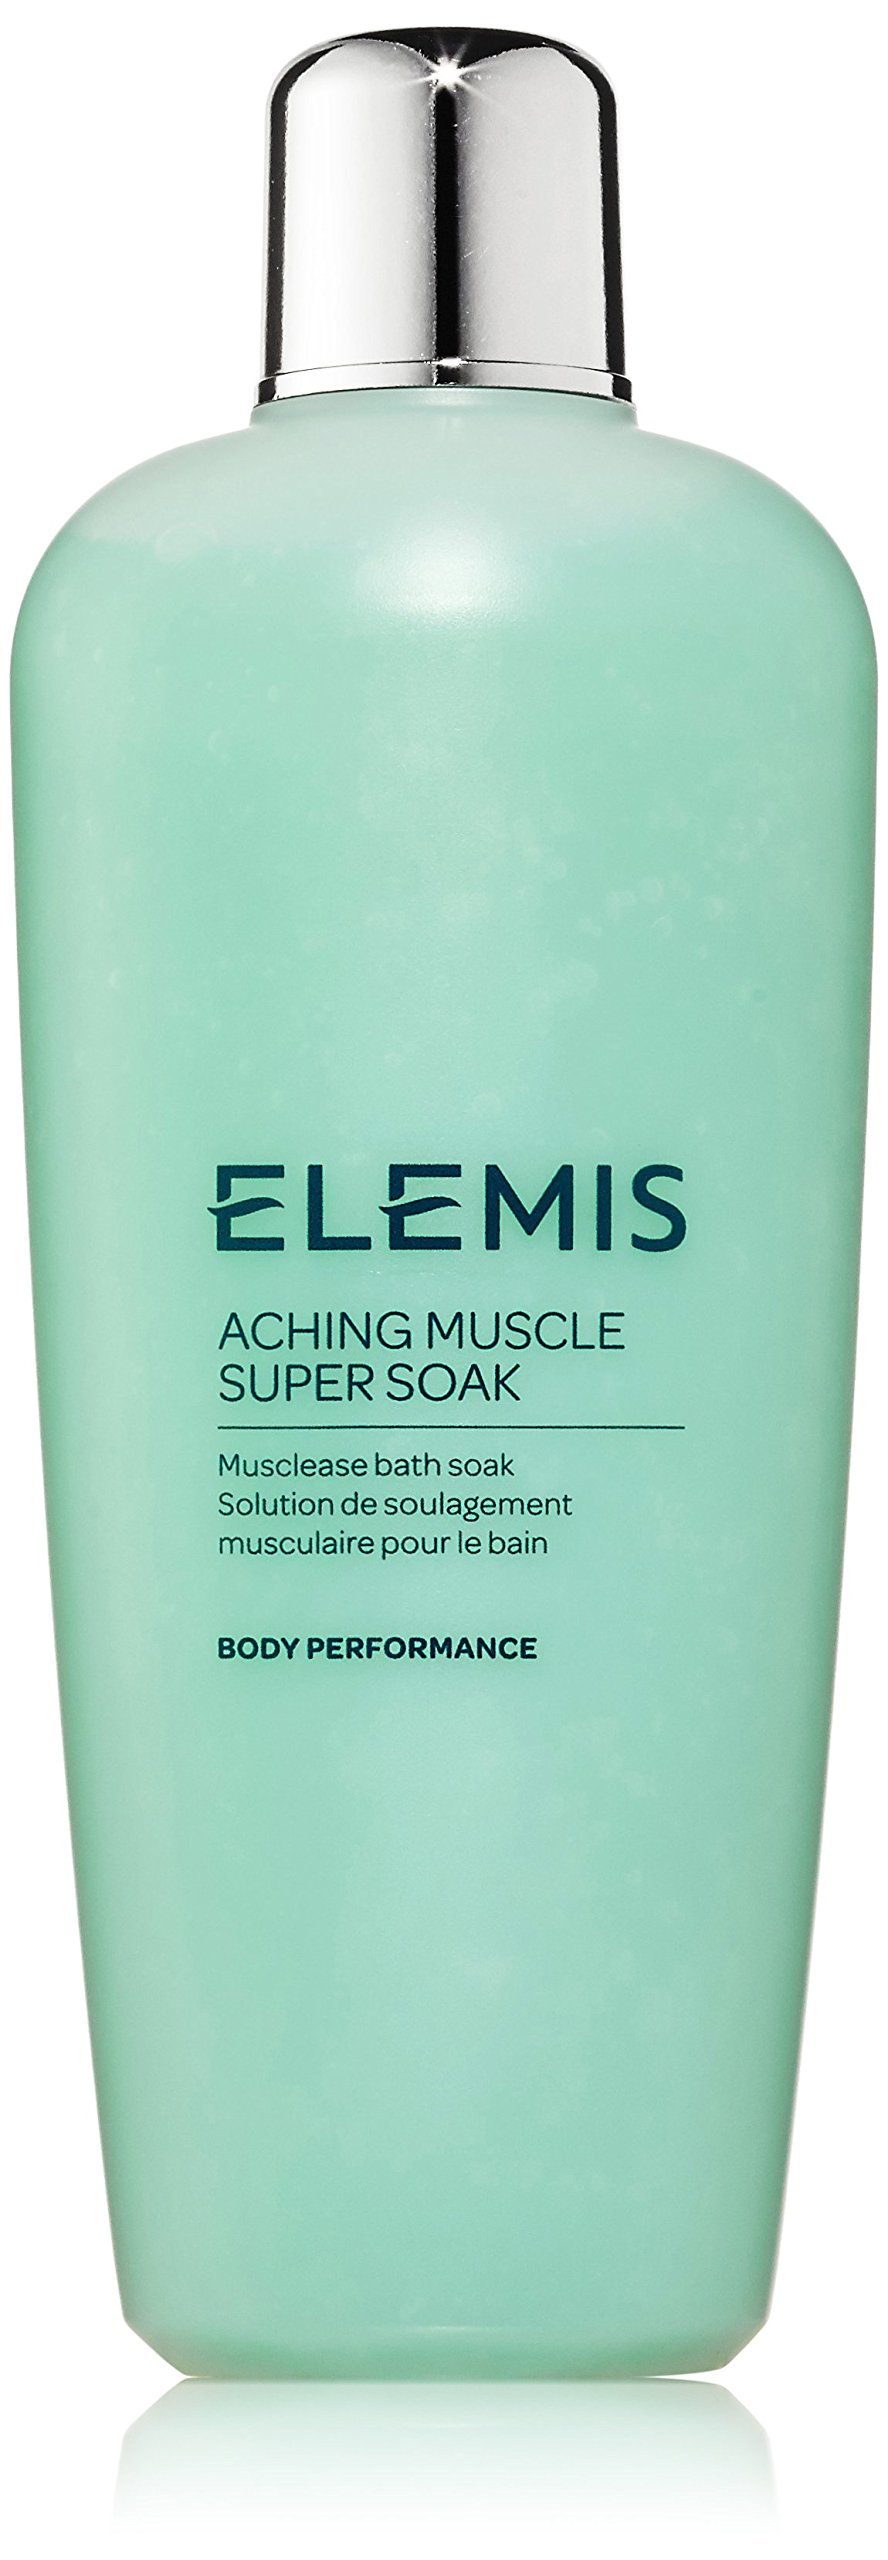 Elemis Aching Muscle Super Soak, Musclease Bath Soak, 400 ml